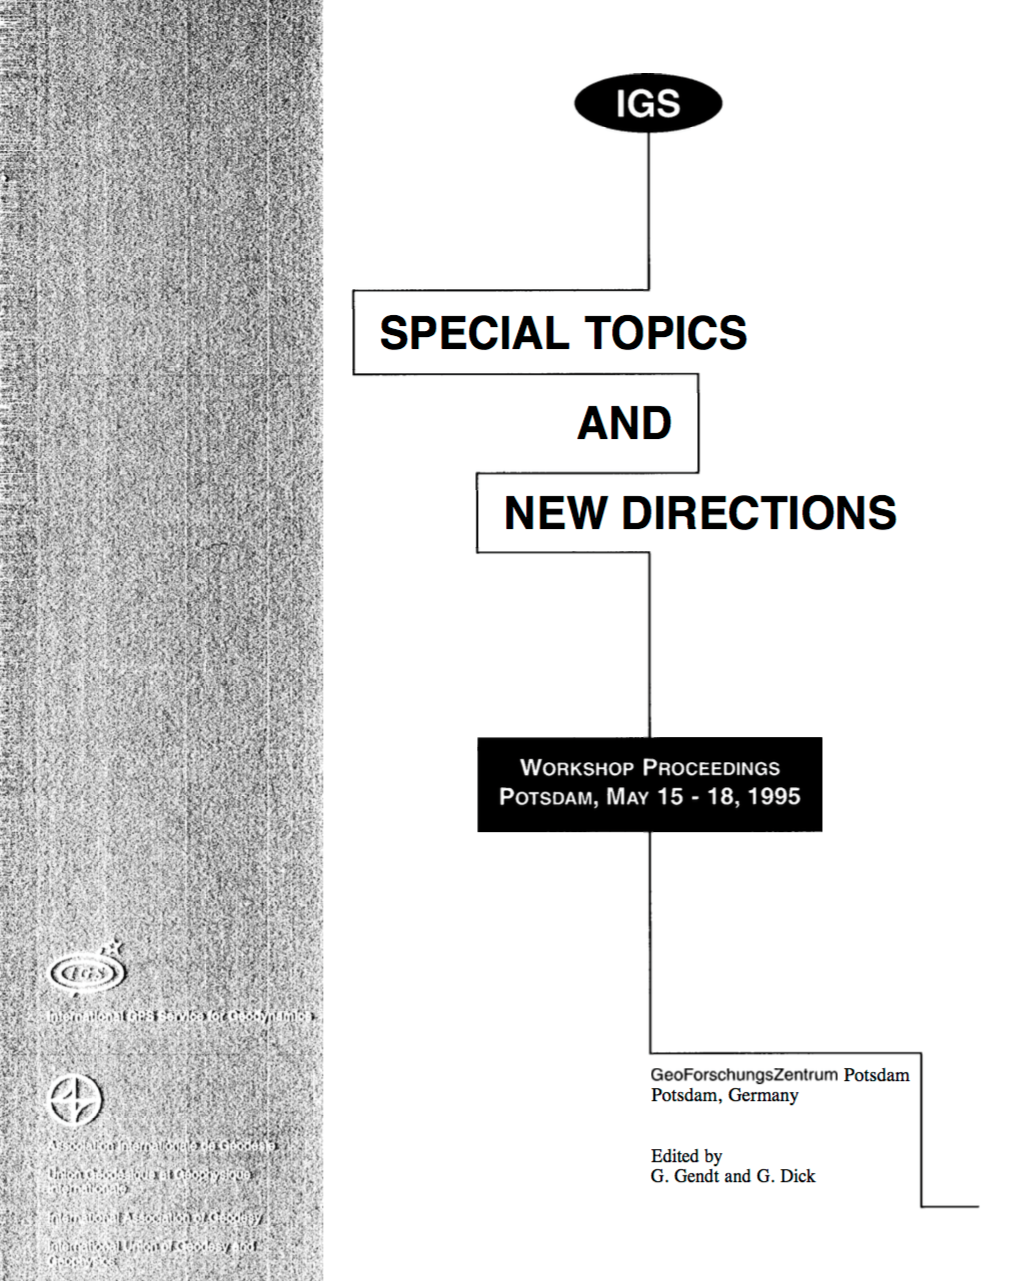 IGS_Workshop_Proceedings_1995_Cover.png